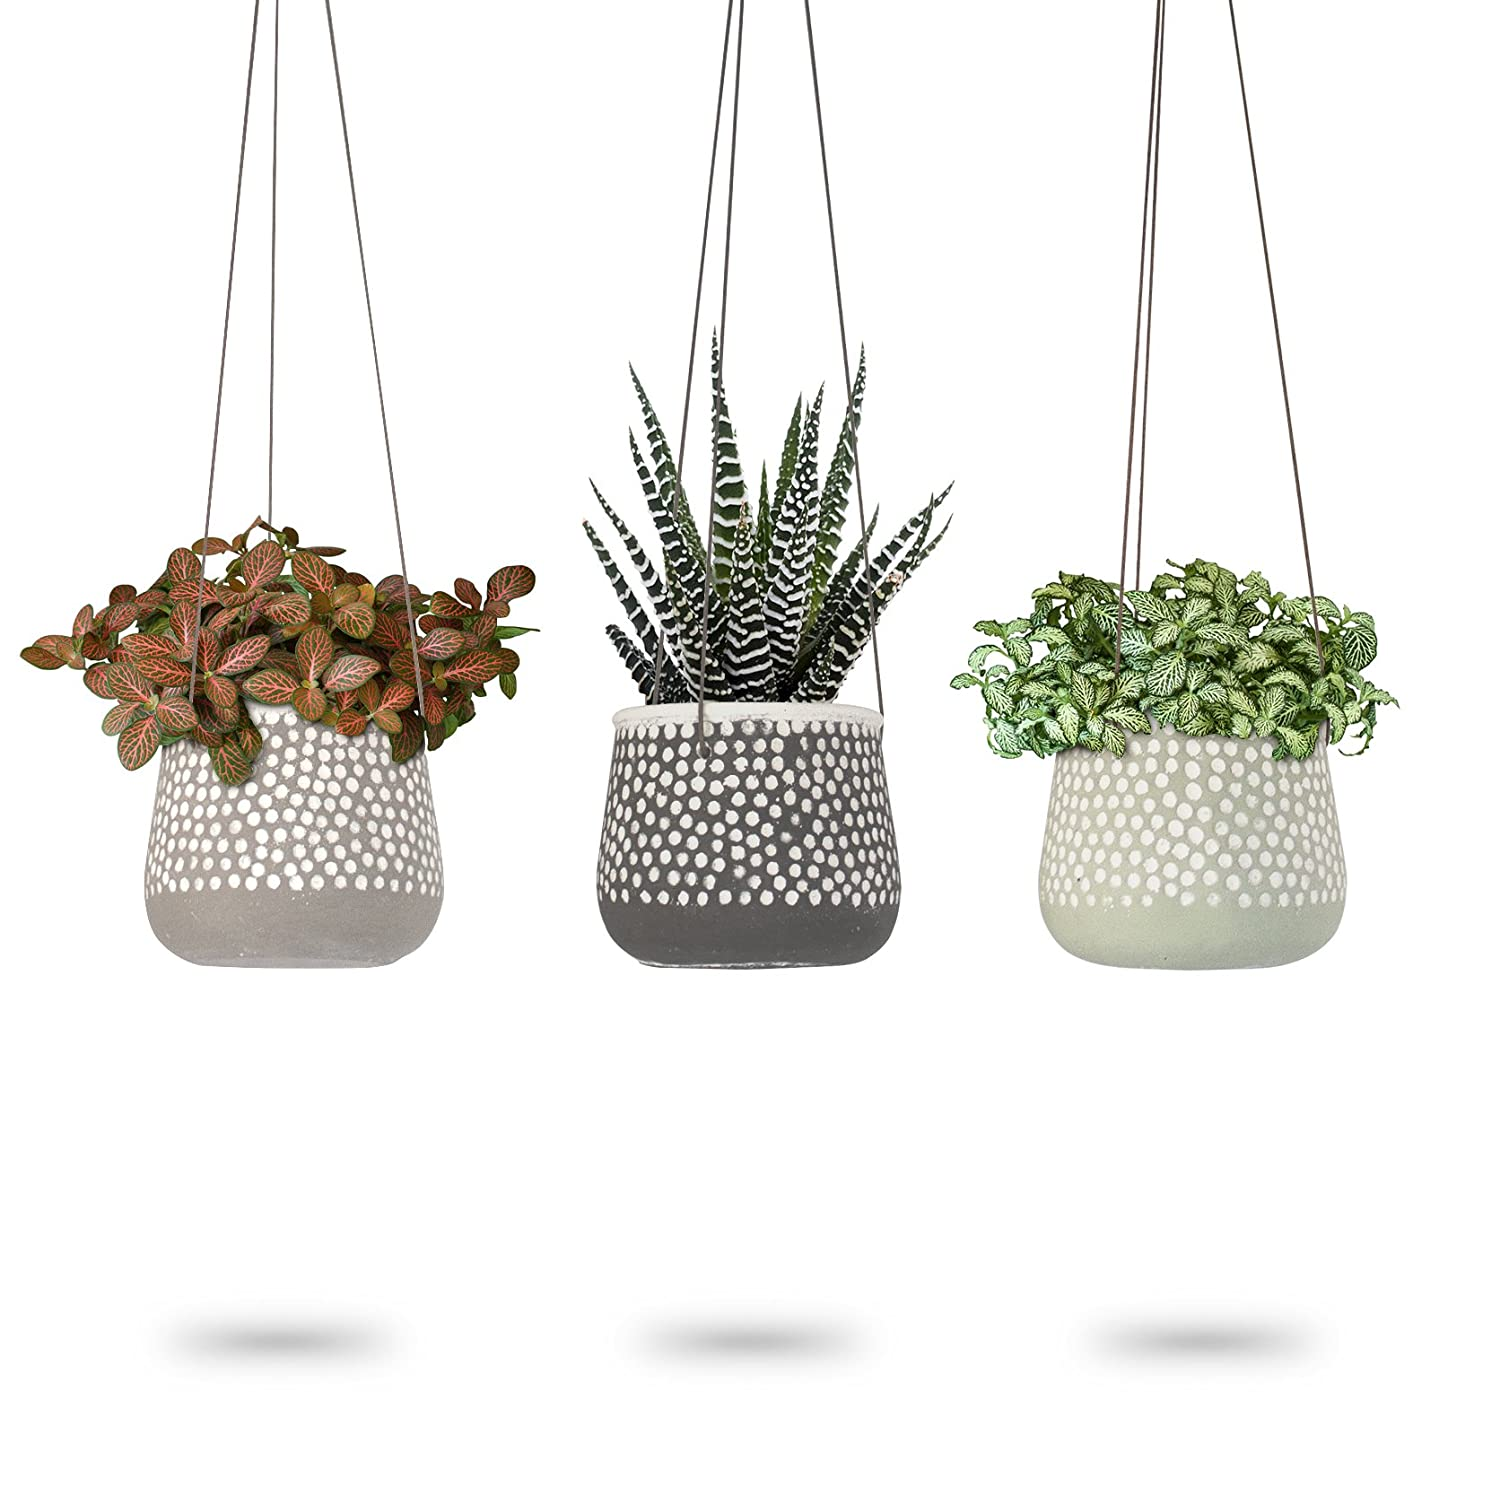 3 Pack Hanging Planter for Indoor Plants White Concrete Pots Round Air Succulent Holder Container Cactus Pot with Rope Hanger 23 Bees 3, Shades of Nature